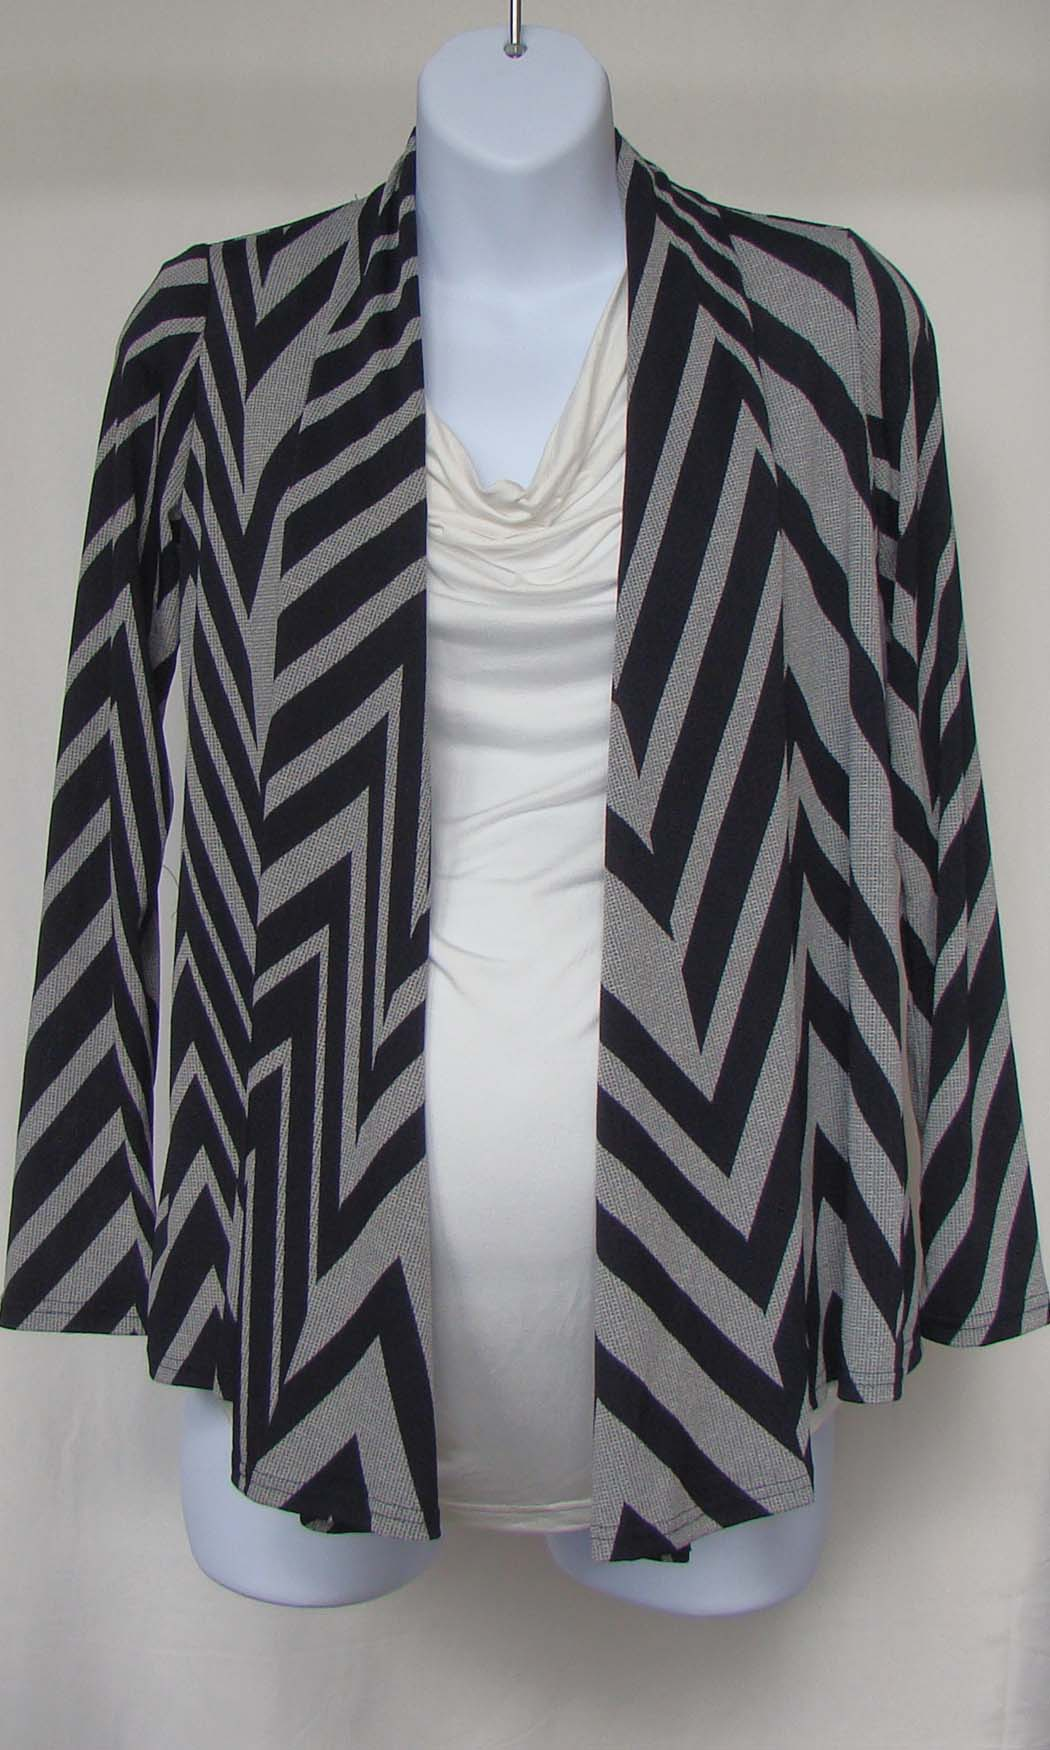 9a9774abbd06a Bellyssima Chevron Cardigan – Nest and Sprout Maternity